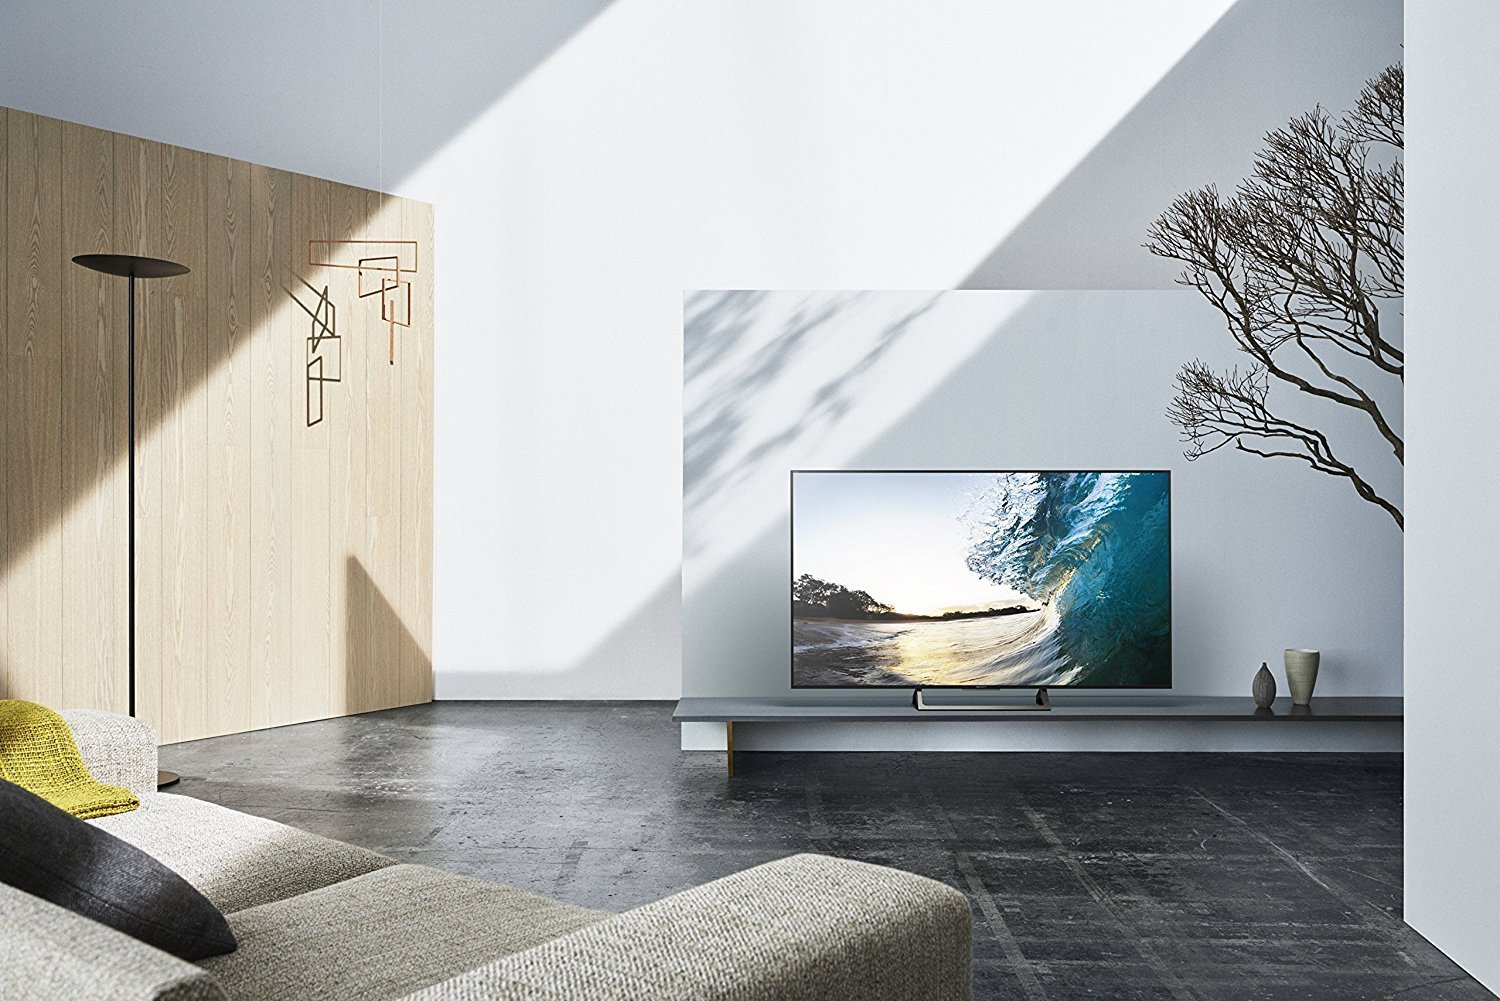 Sony 65-Inch 4k UHD Smart TV